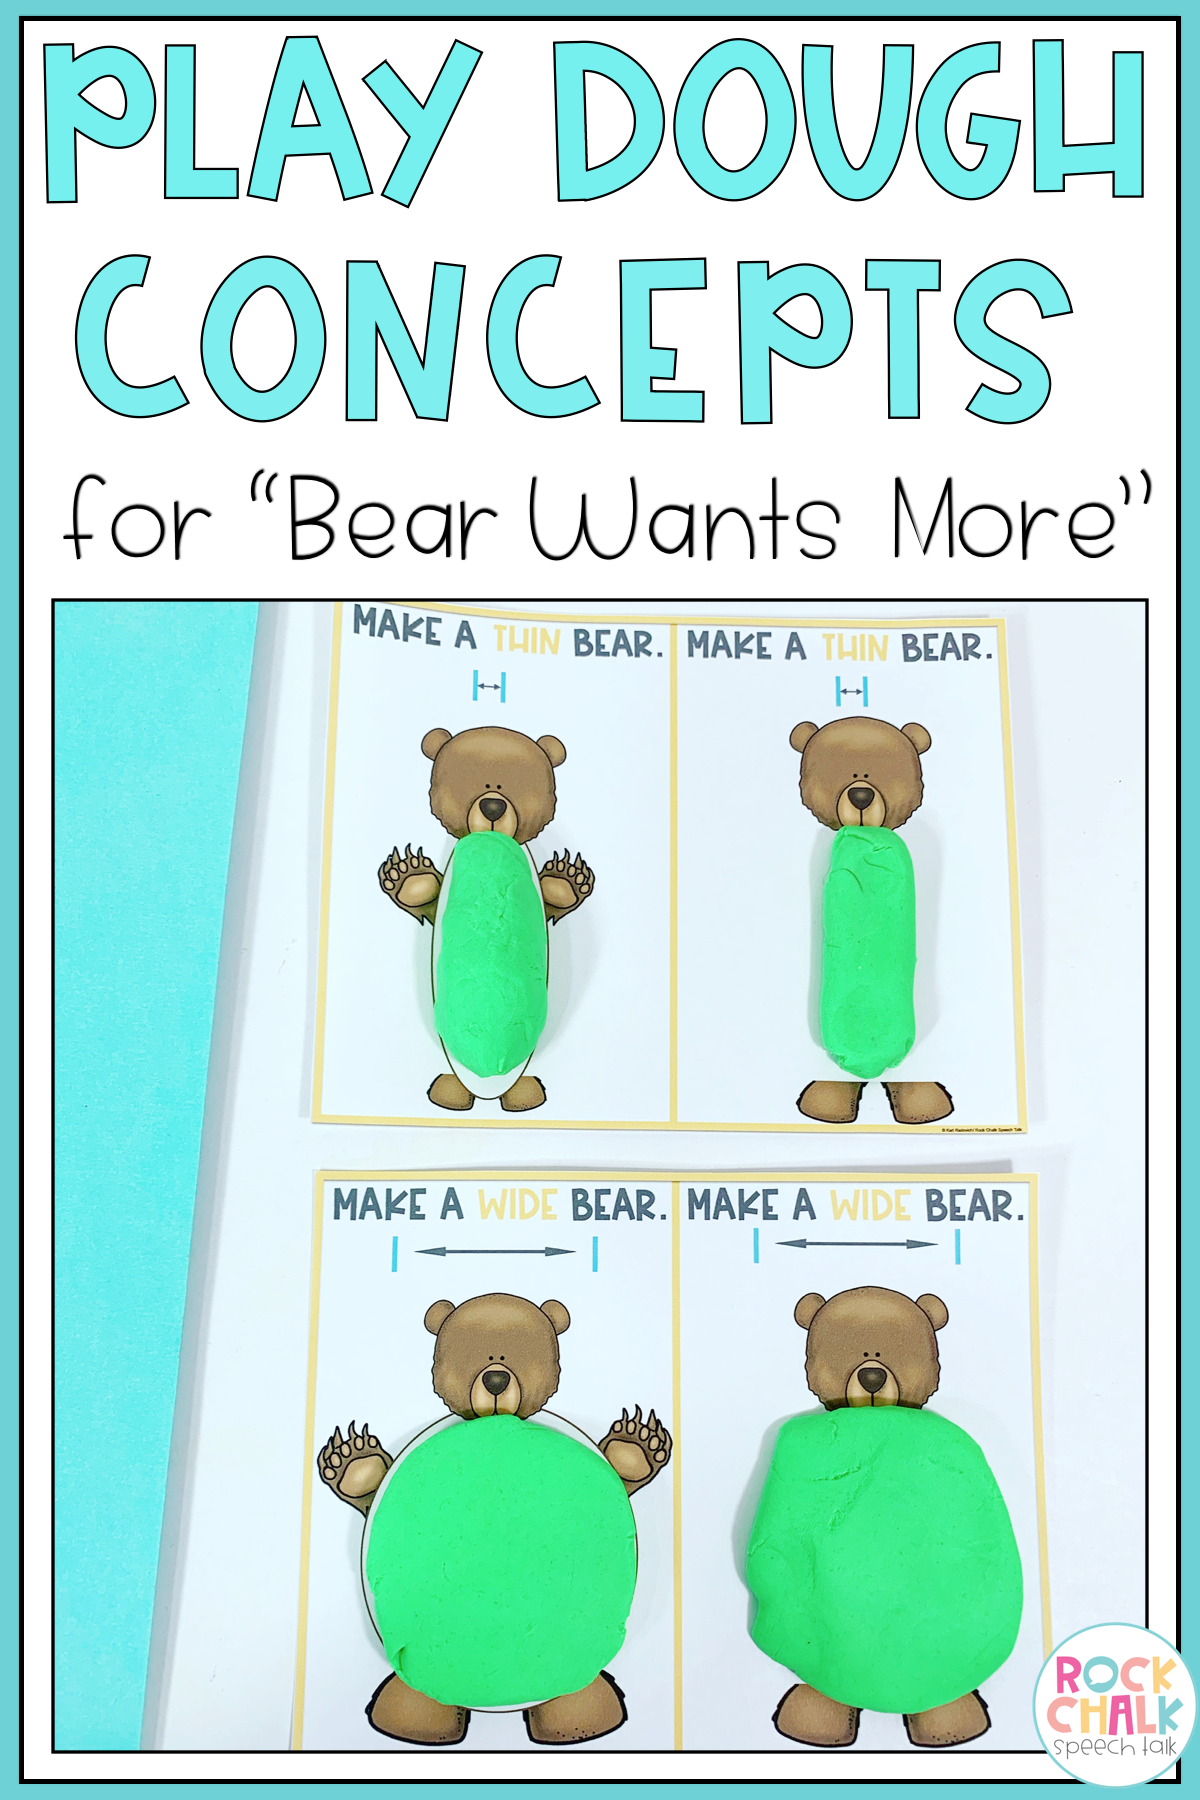 Bear Wants More Speech Therapy Book Companion